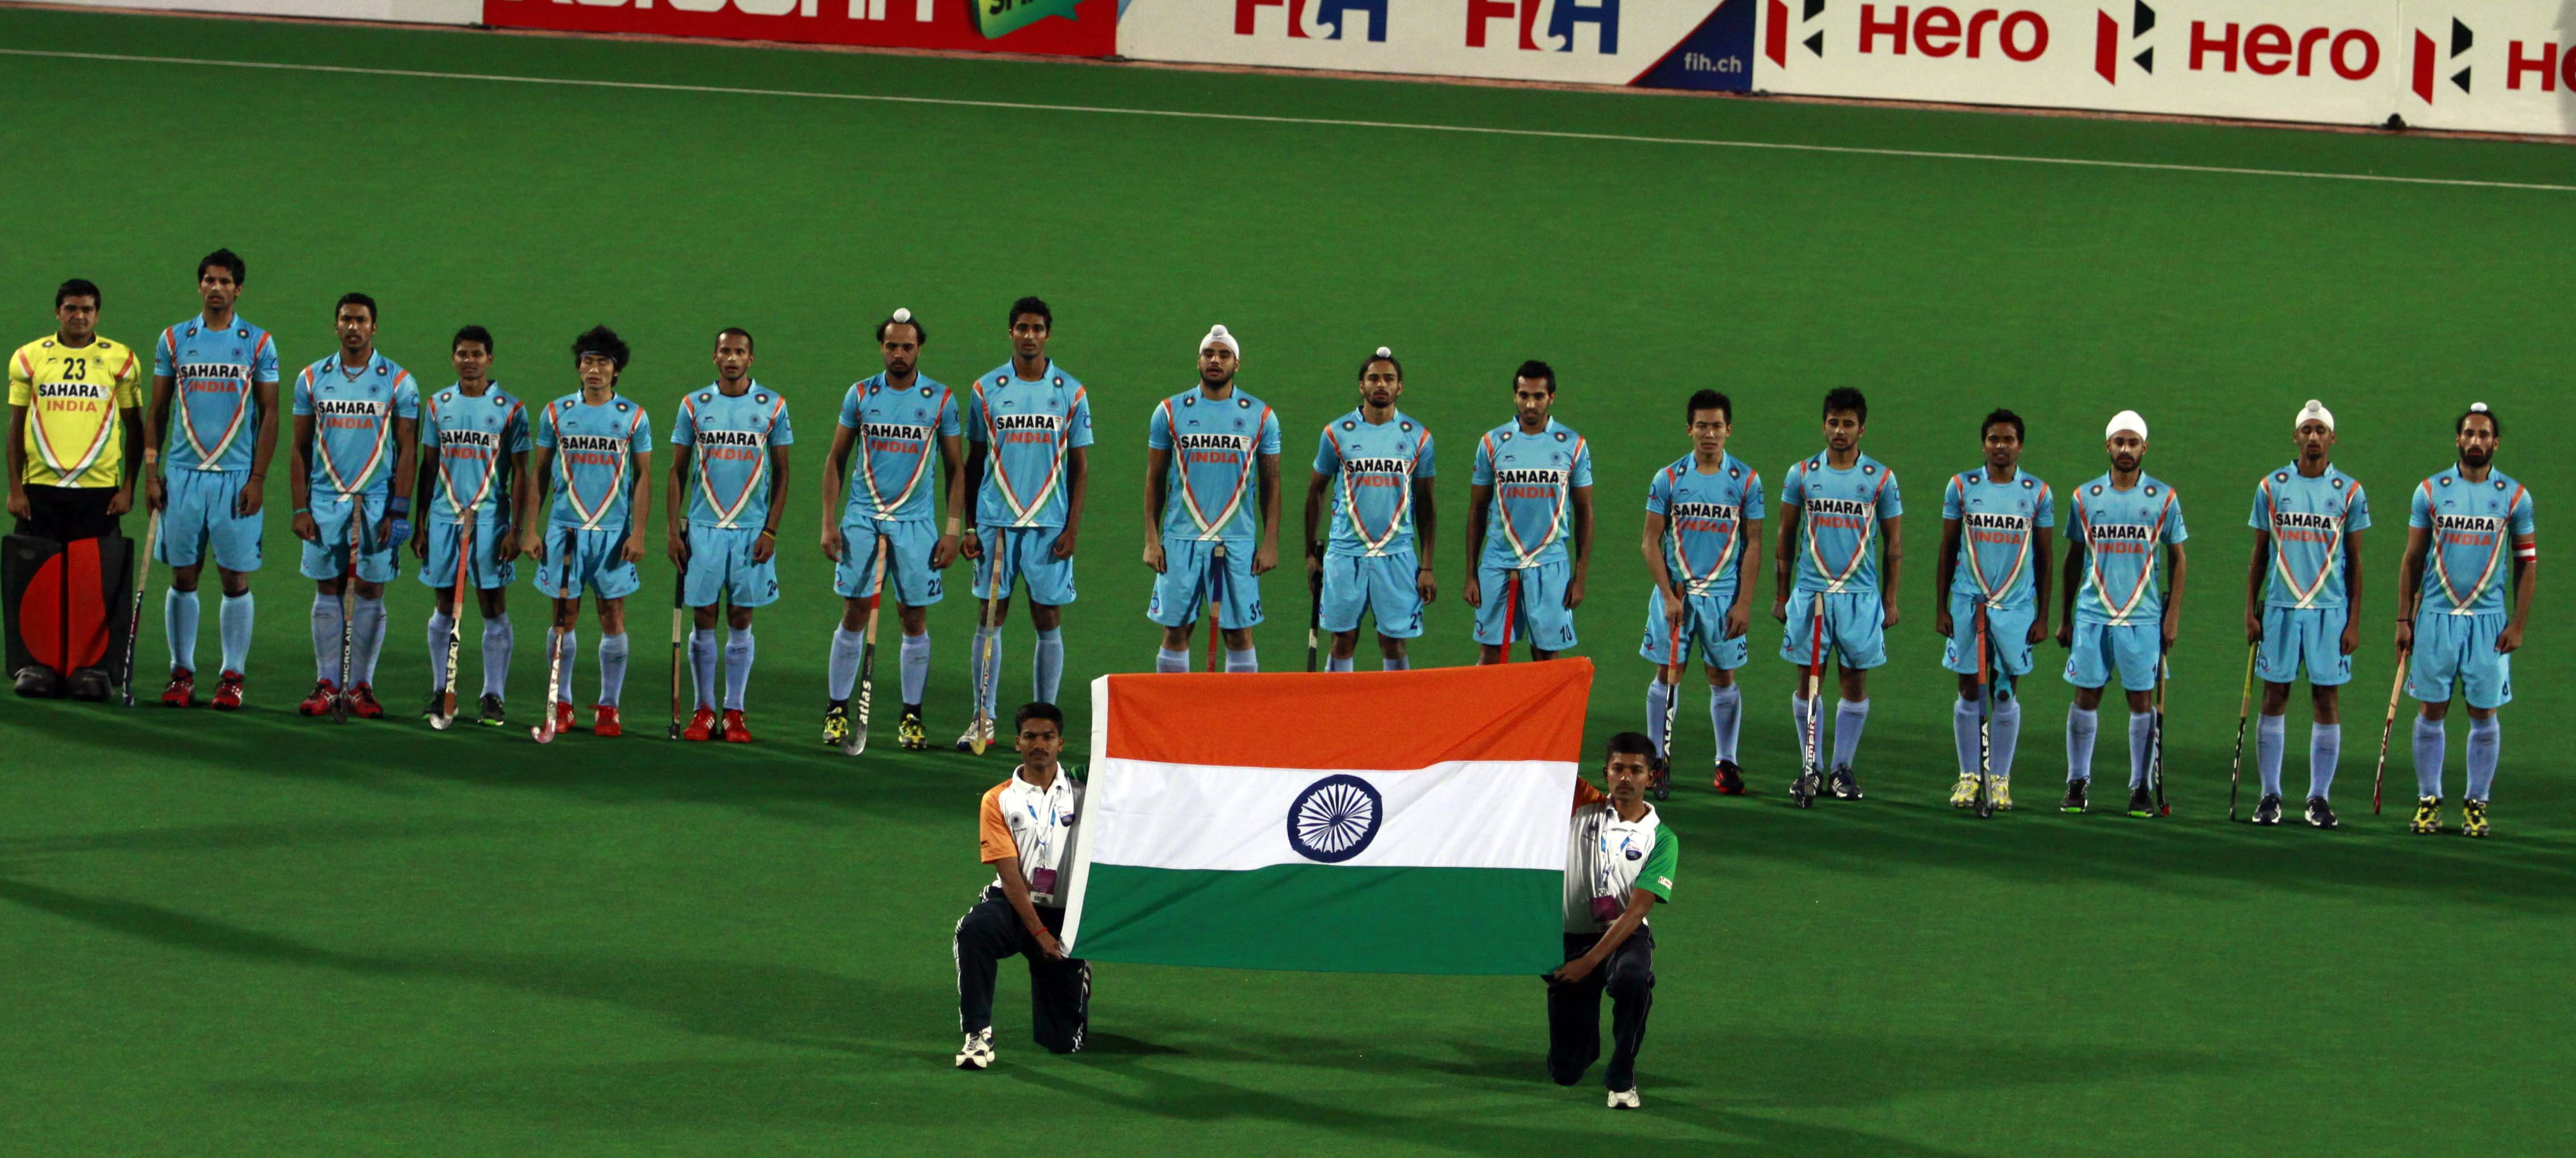 Indian team during National Anthom